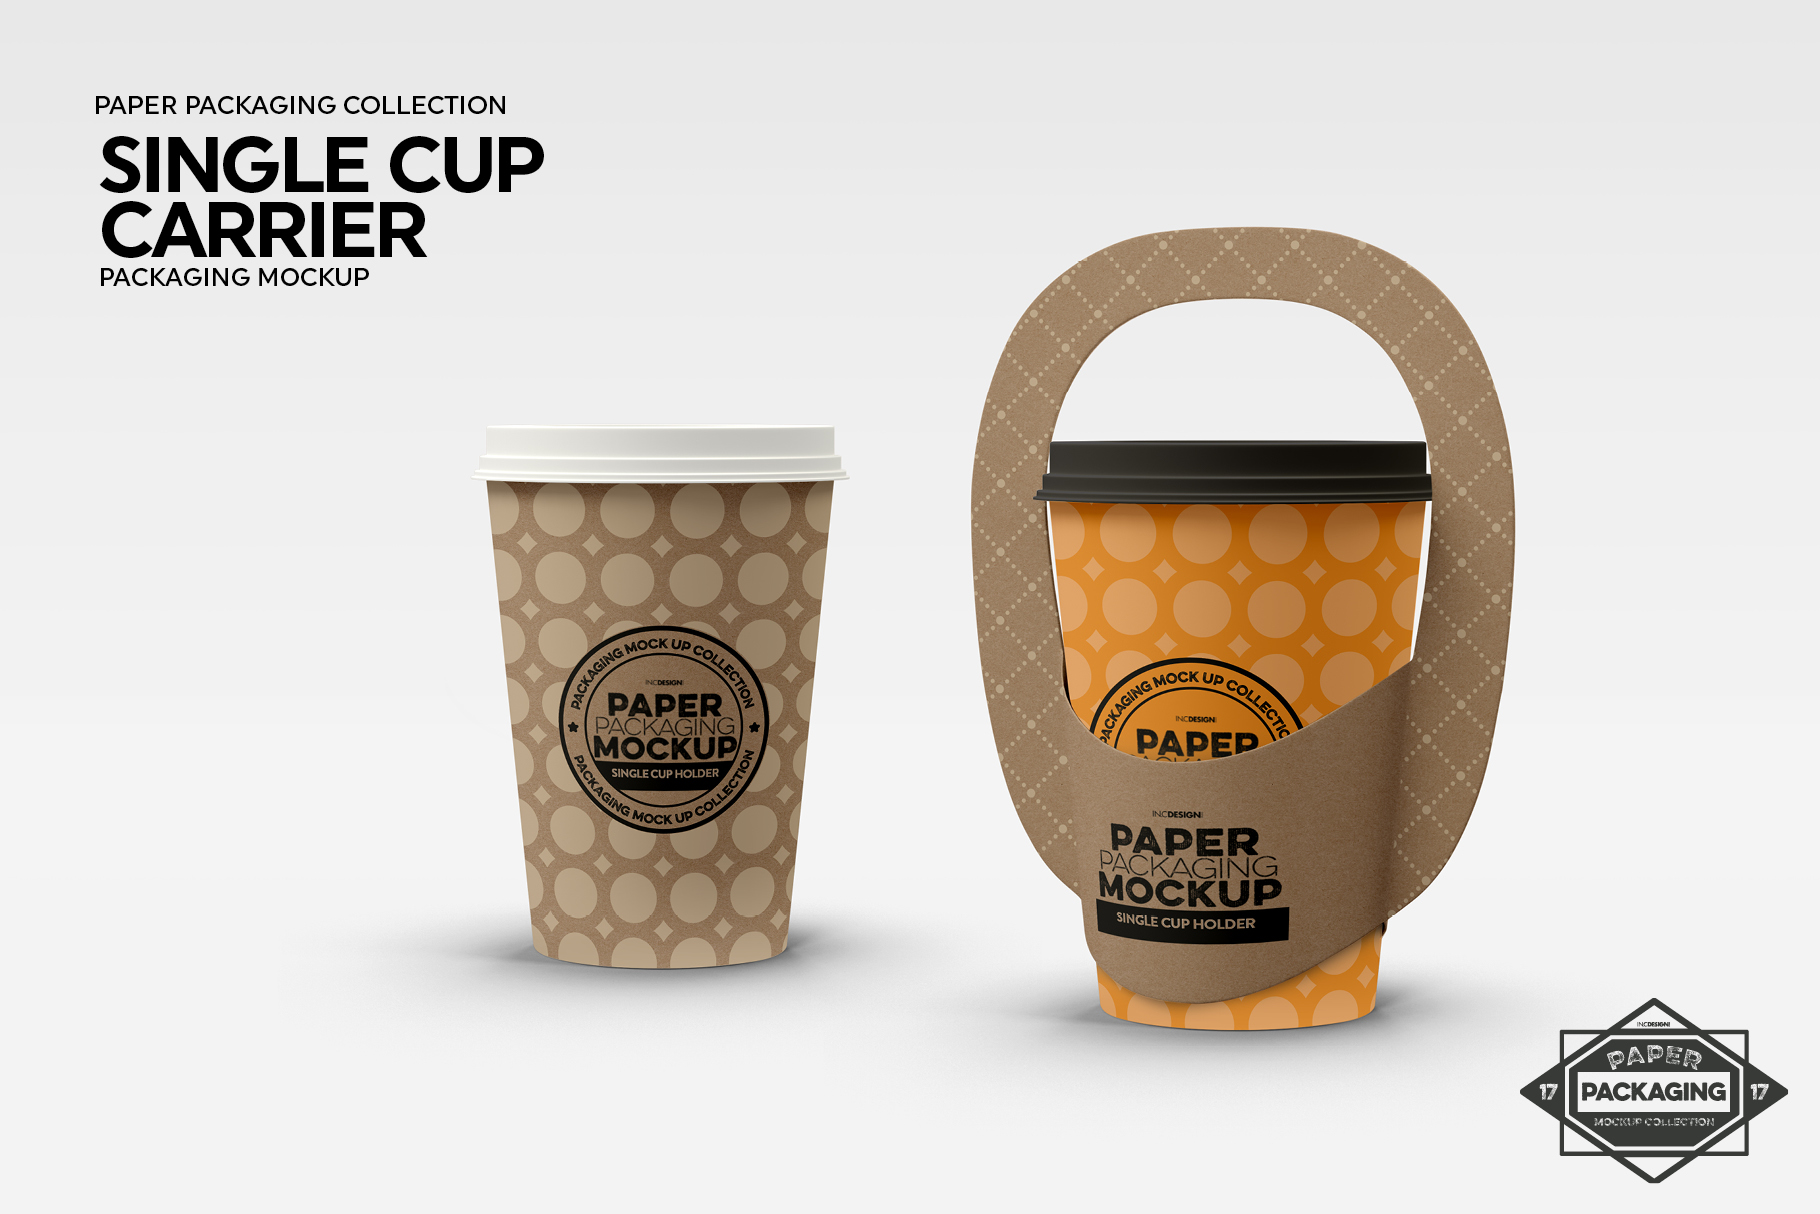 Single Cup Paper Carrier Packaging Mockup example image 3